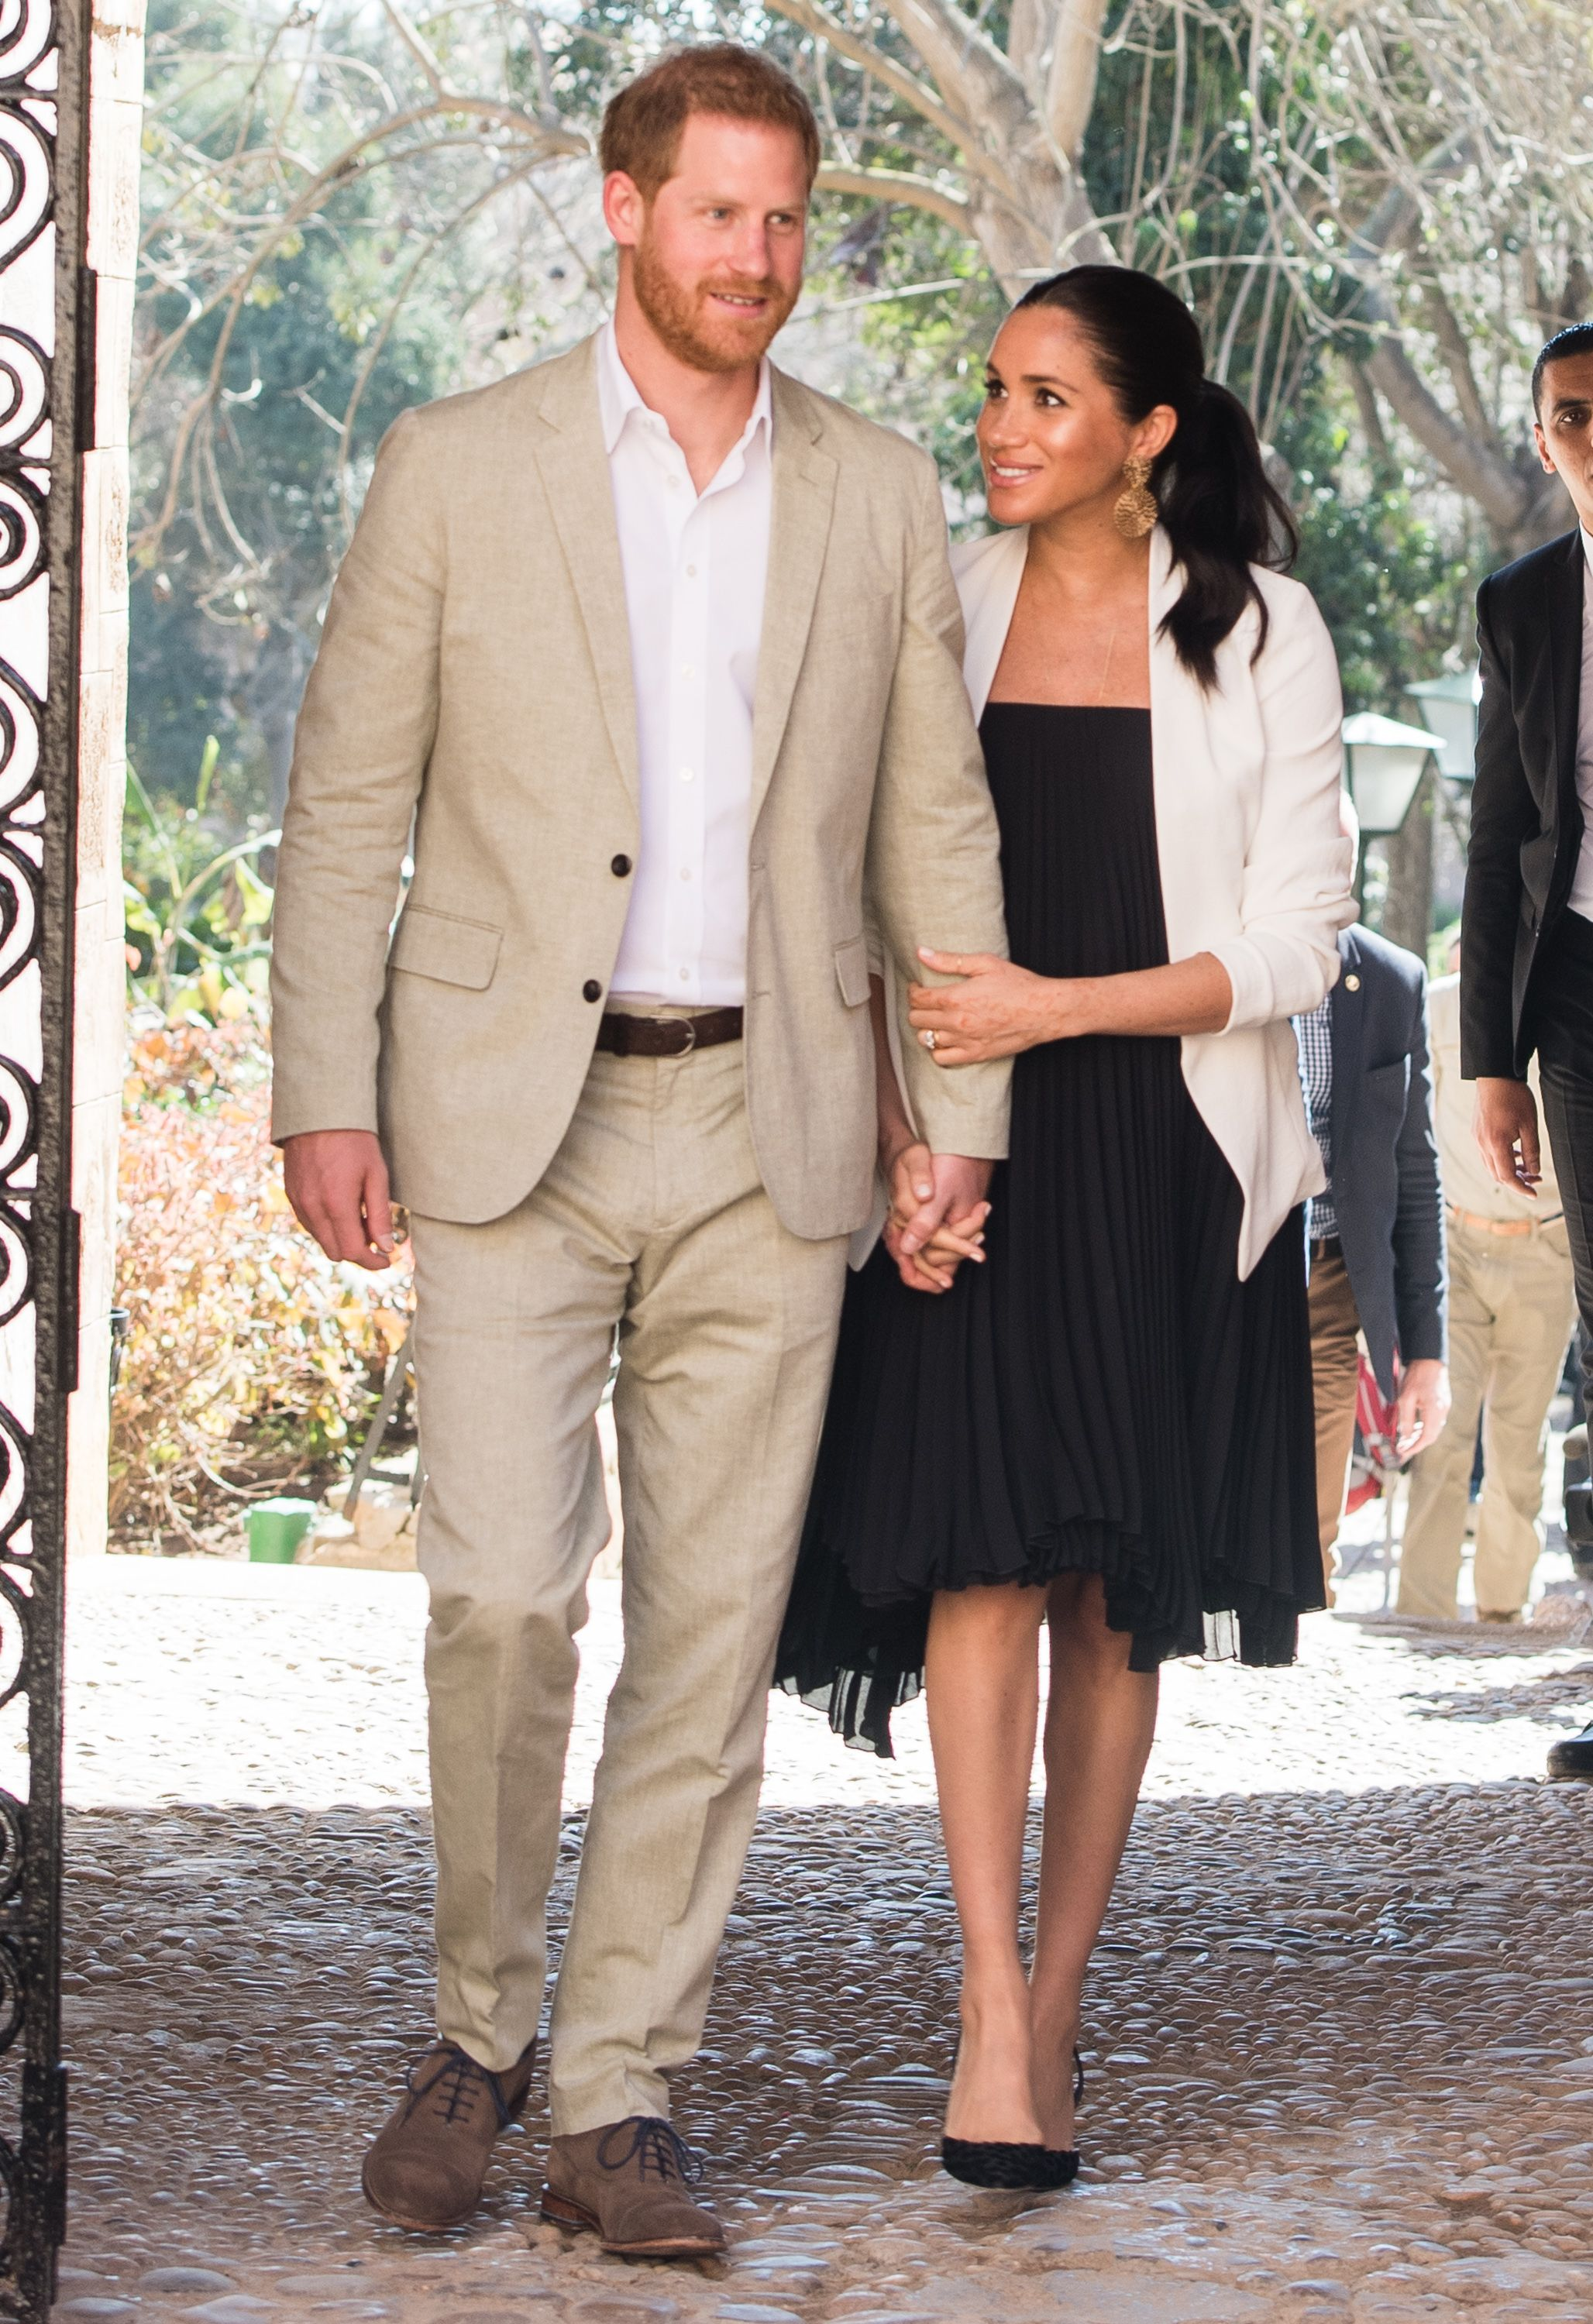 """Prince Harry and Meghan Markle Prefer the """"Energy"""" at Frogmore Cottage Over Kensington Palace"""